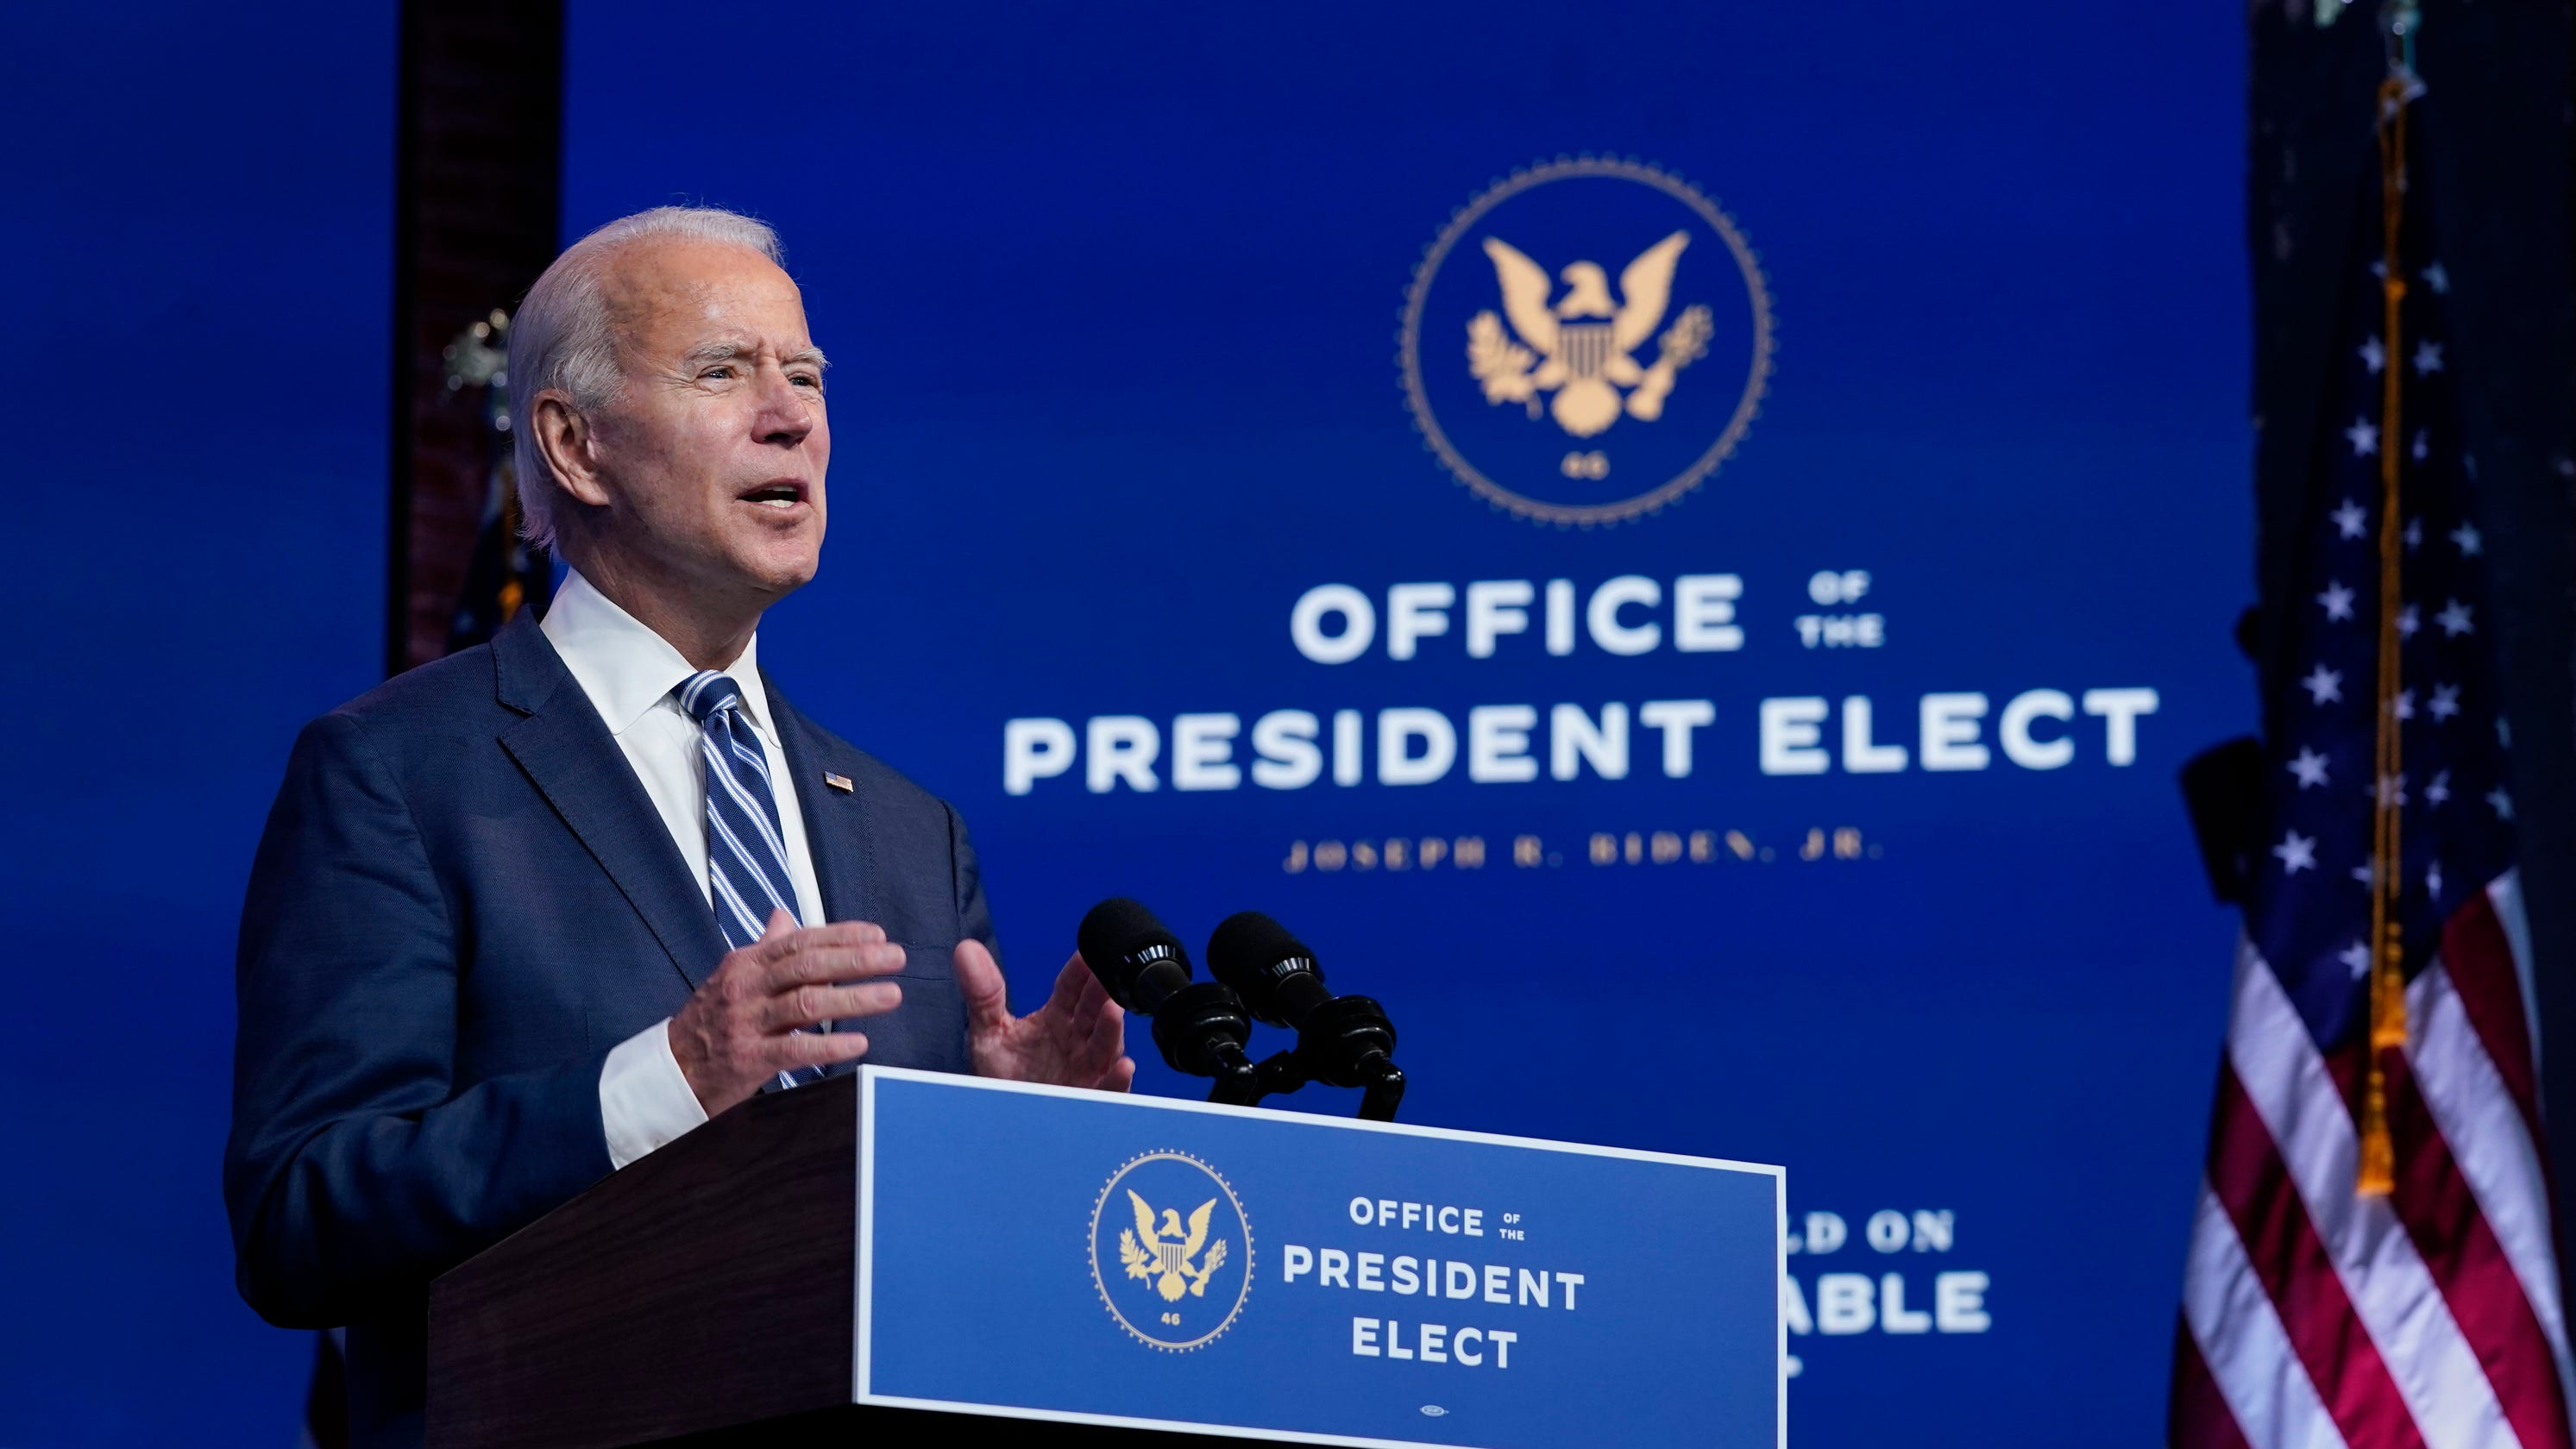 Biden increases lead in Arizona, ending Trump's hopes for state